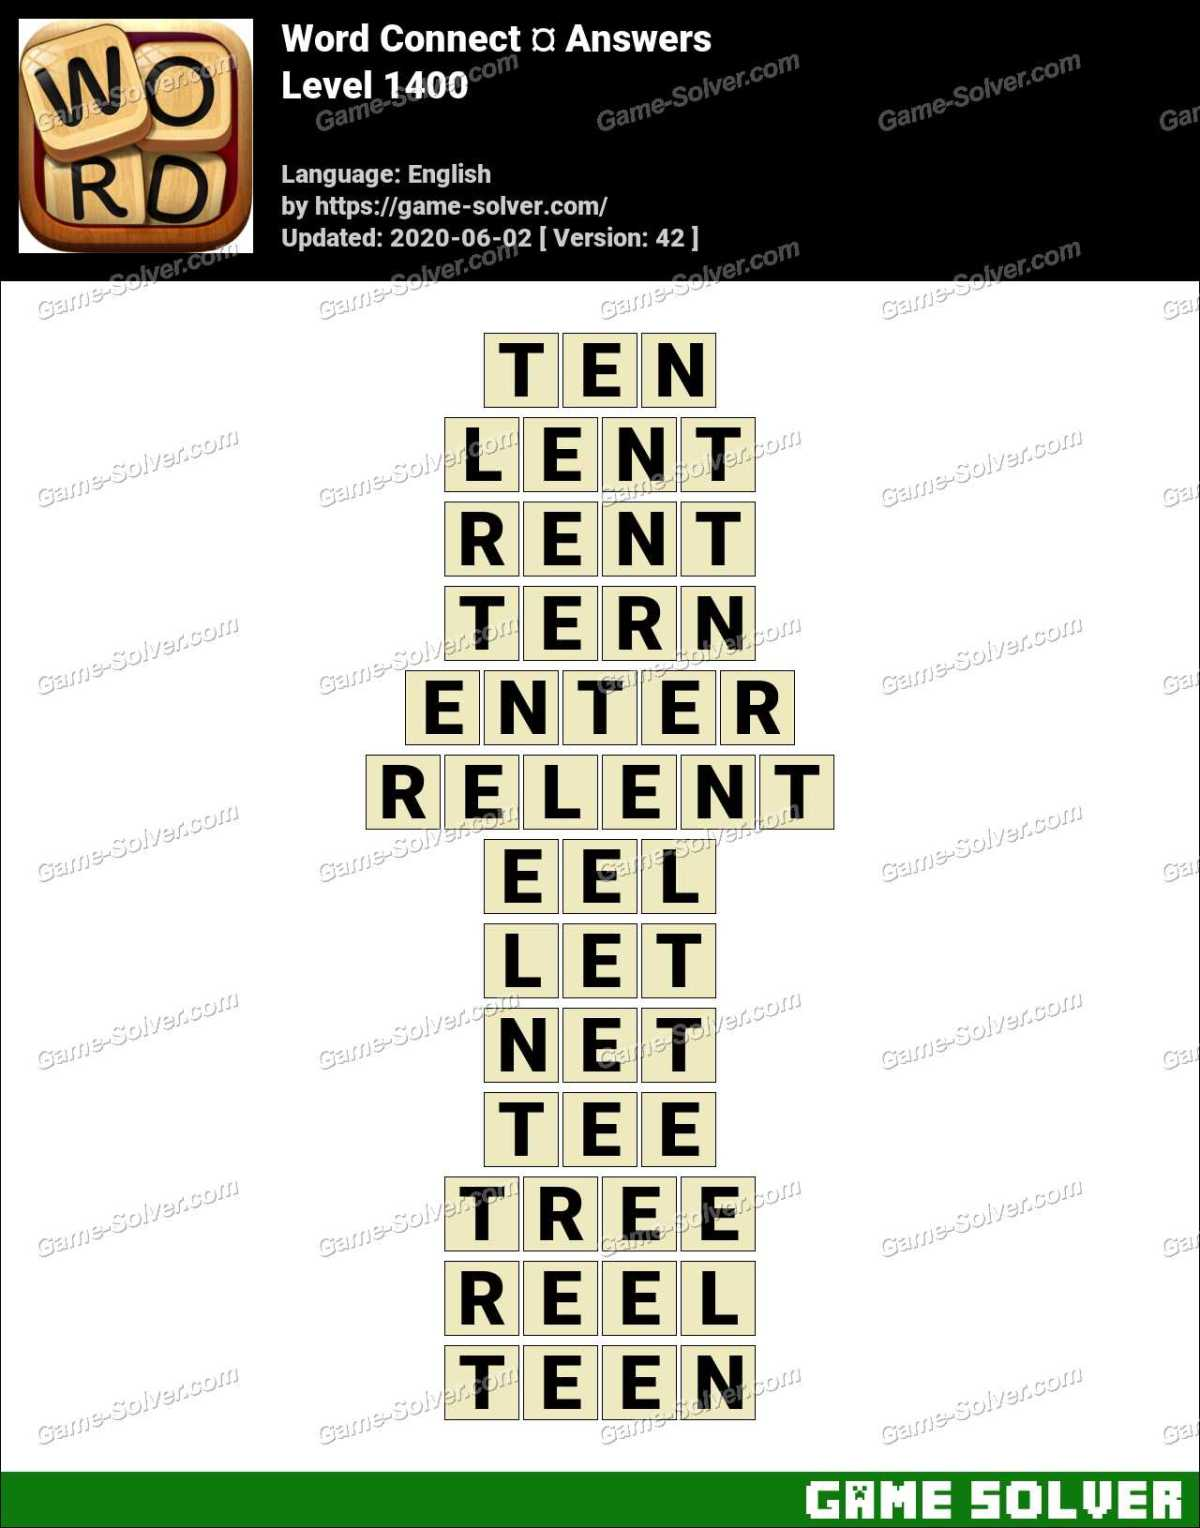 Word Connect Level 1400 Answers